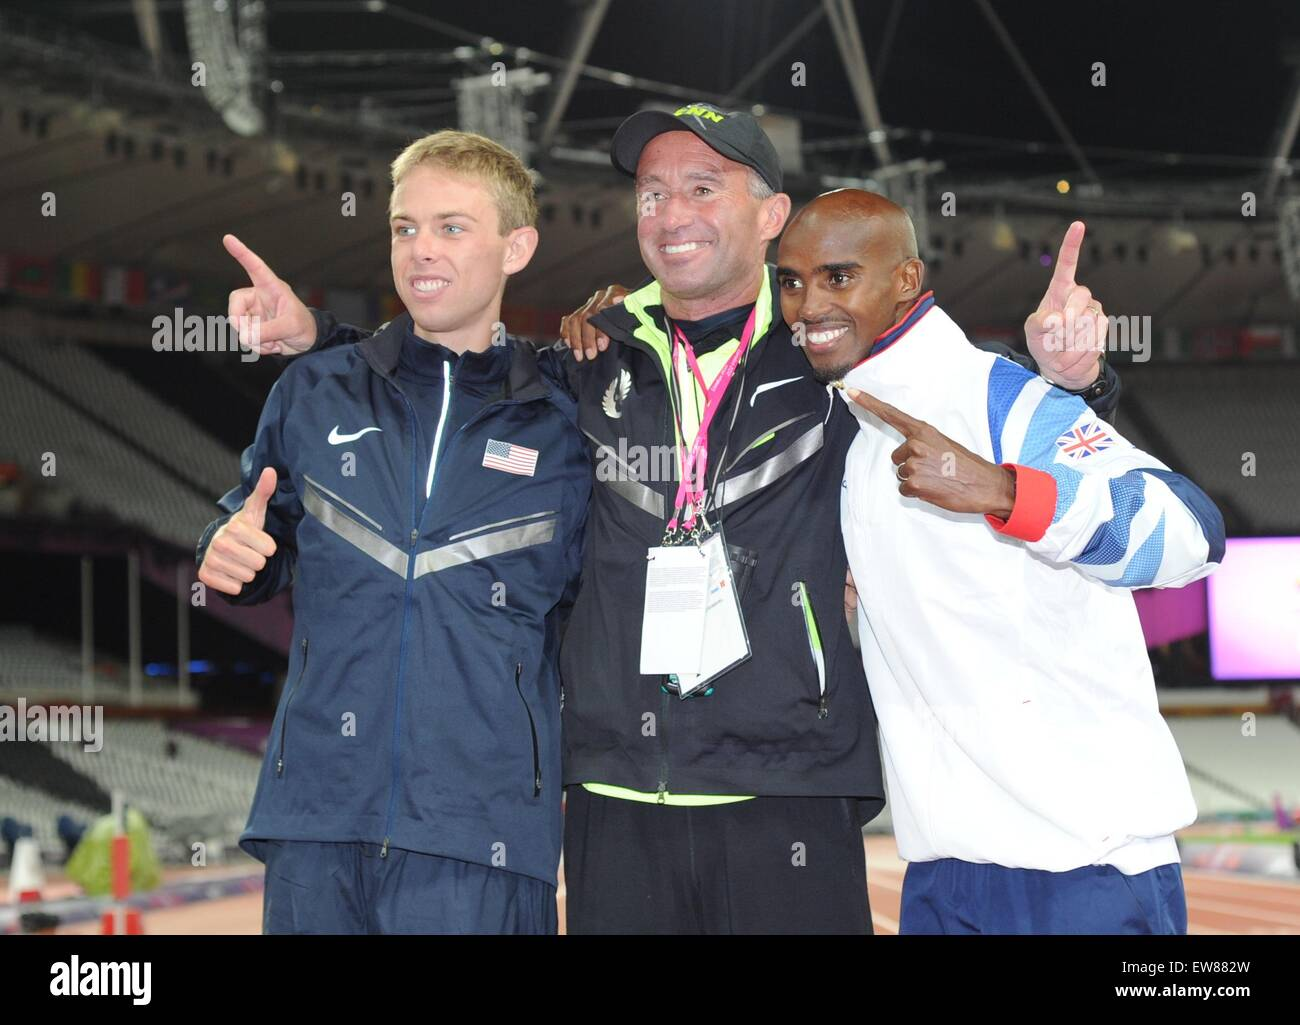 Galen Rupp, Alberto Salazar and Mo Farah celebrate after winning medals in the 10,000 m at the London 2012 Olympic - Stock Image